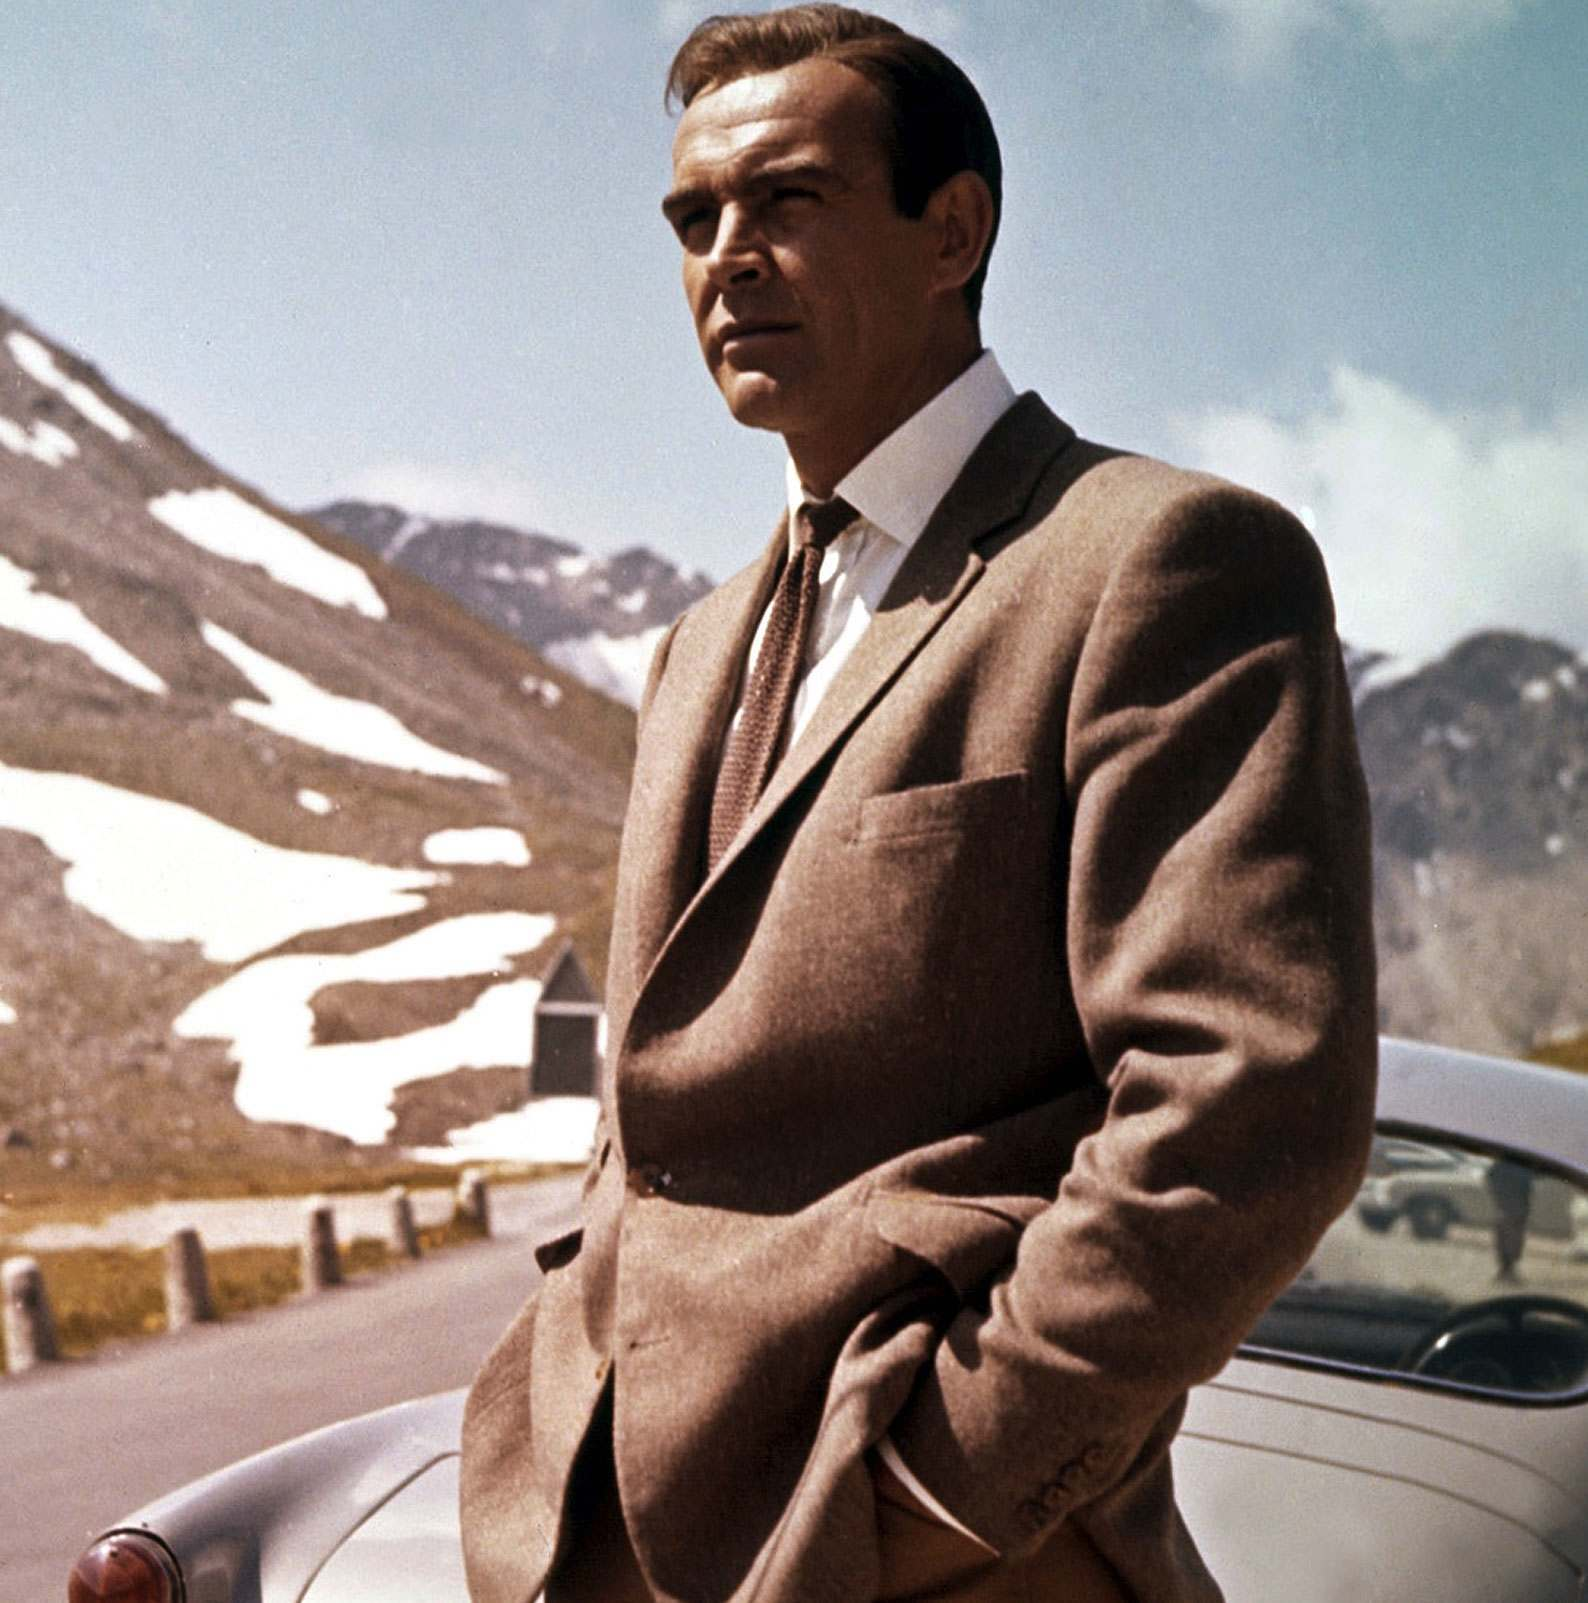 HOW TO DRESS LIKE BOND, JAMES BOND